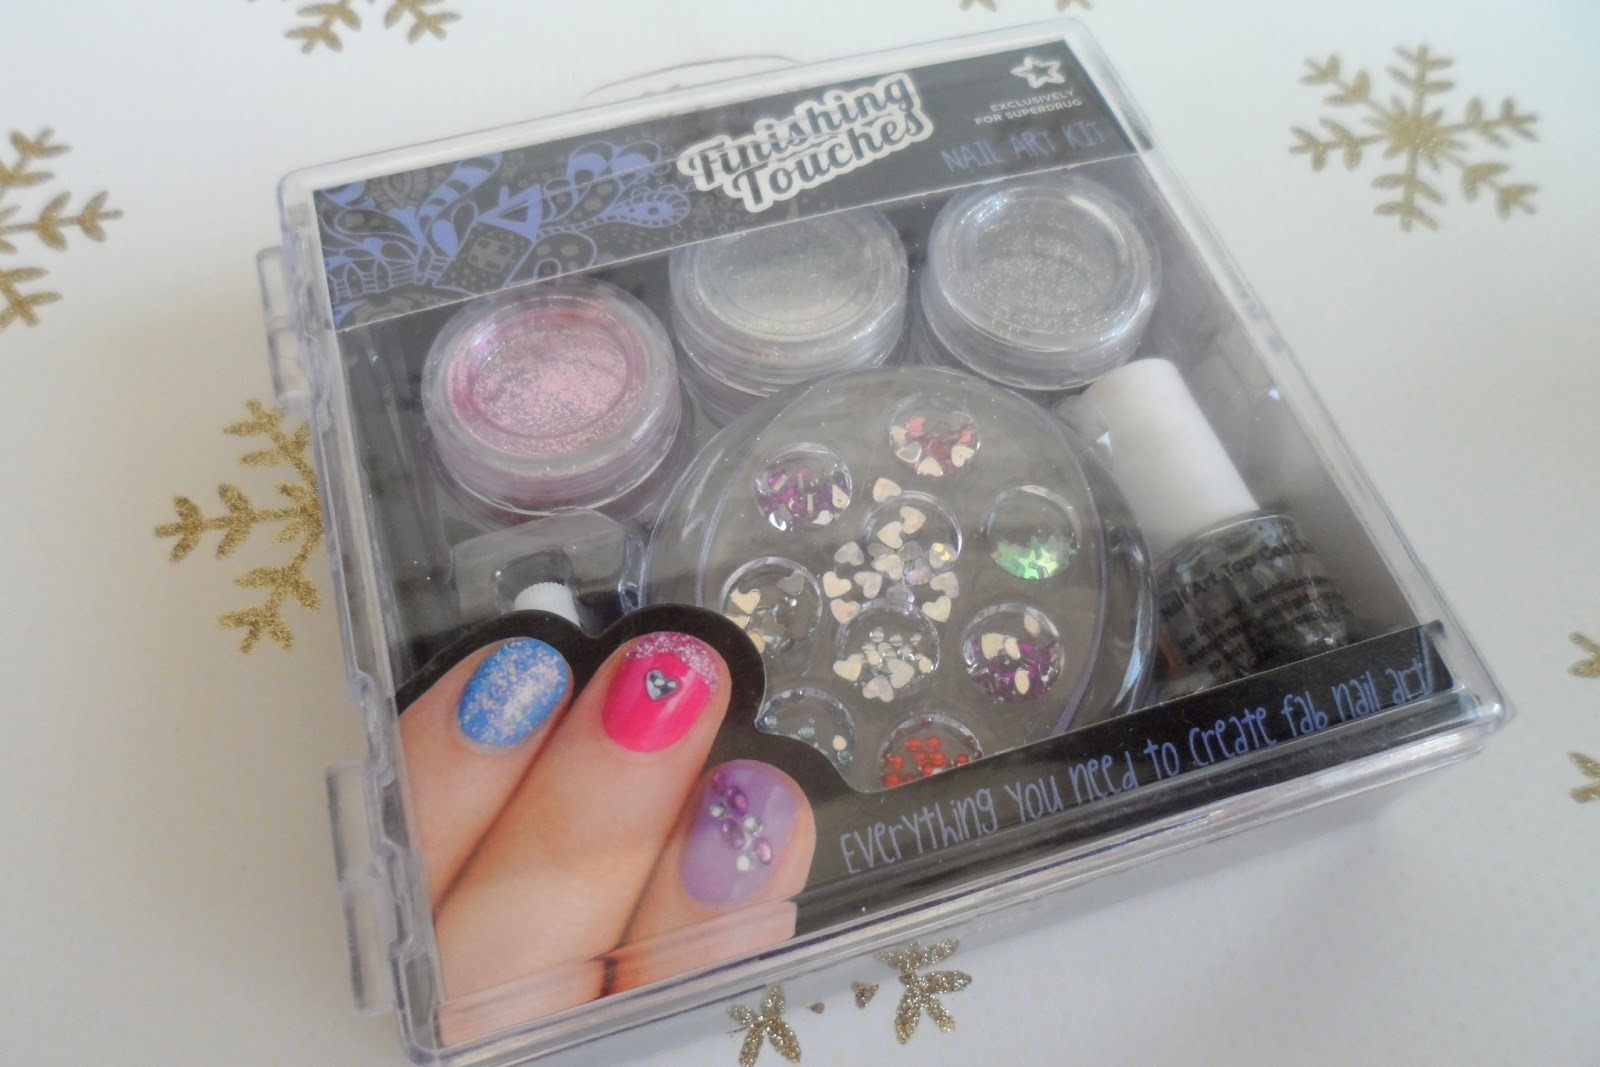 Flutter and sparkle finishing touches nail art supplies from finishing touches nail art supplies from superdrug prinsesfo Image collections